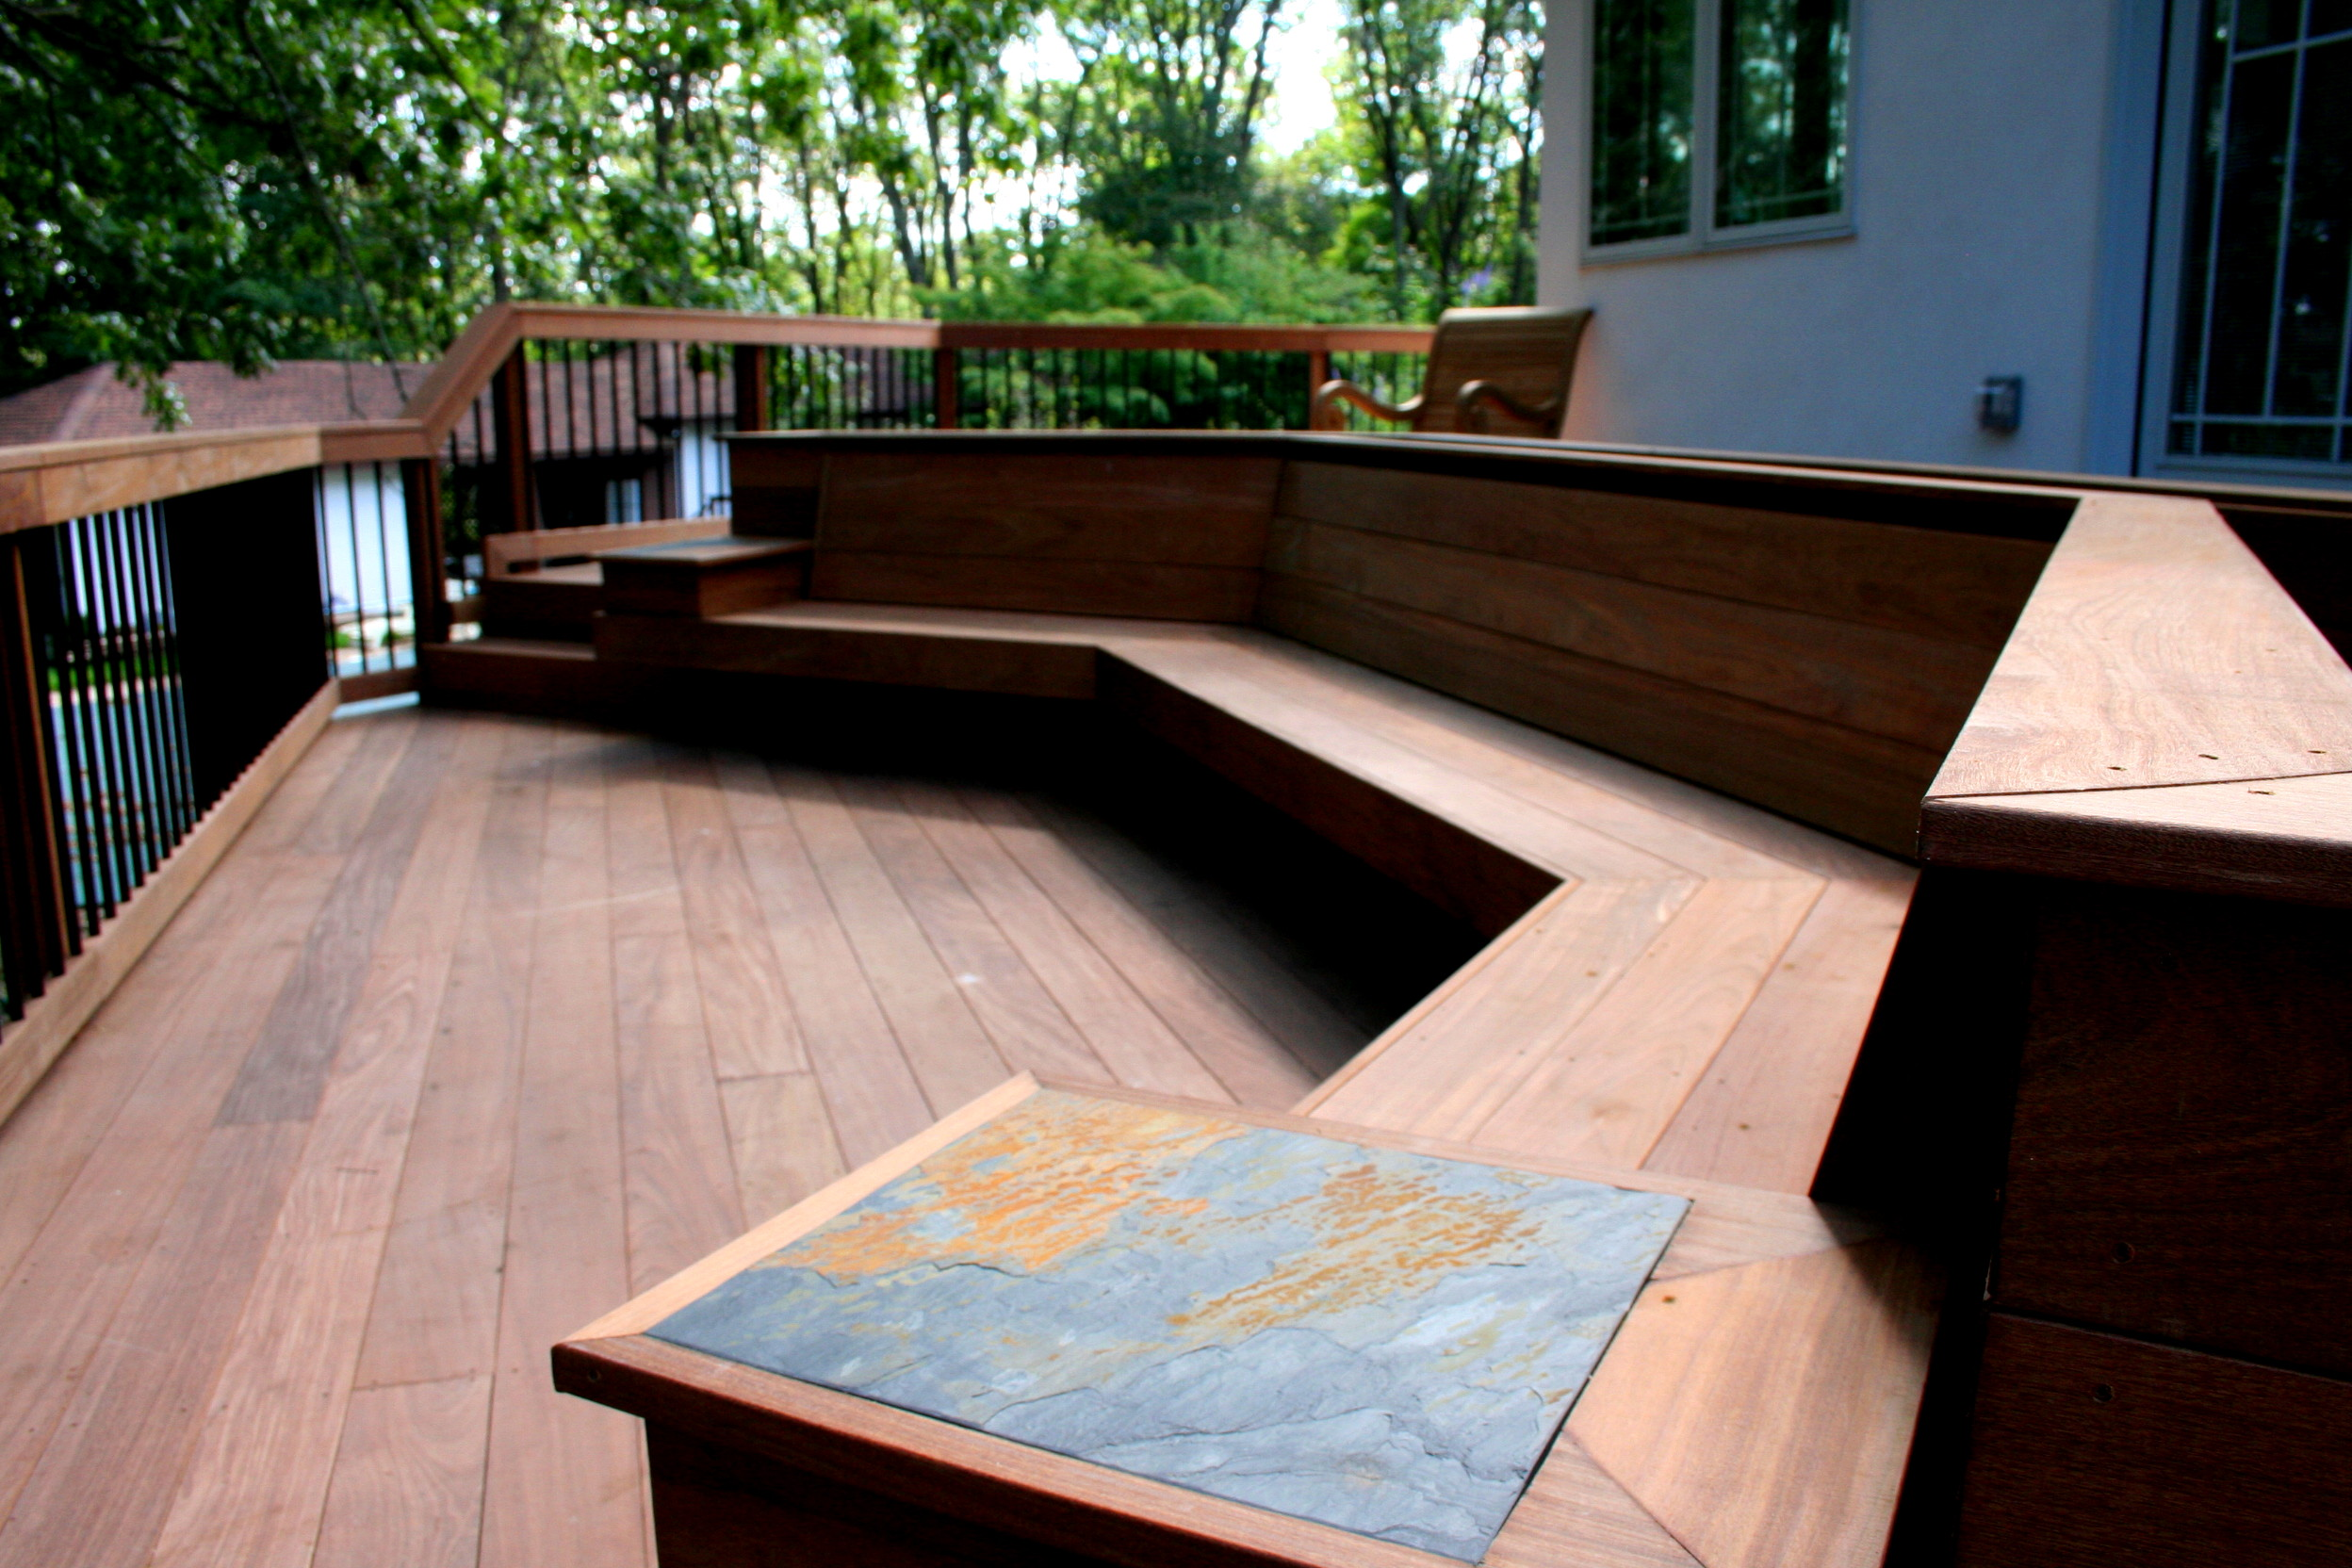 Deck Bench Seating Ideas Part - 20: Outdoor Corner Bench And Wooden Floor Ideas For Outdoor Patio